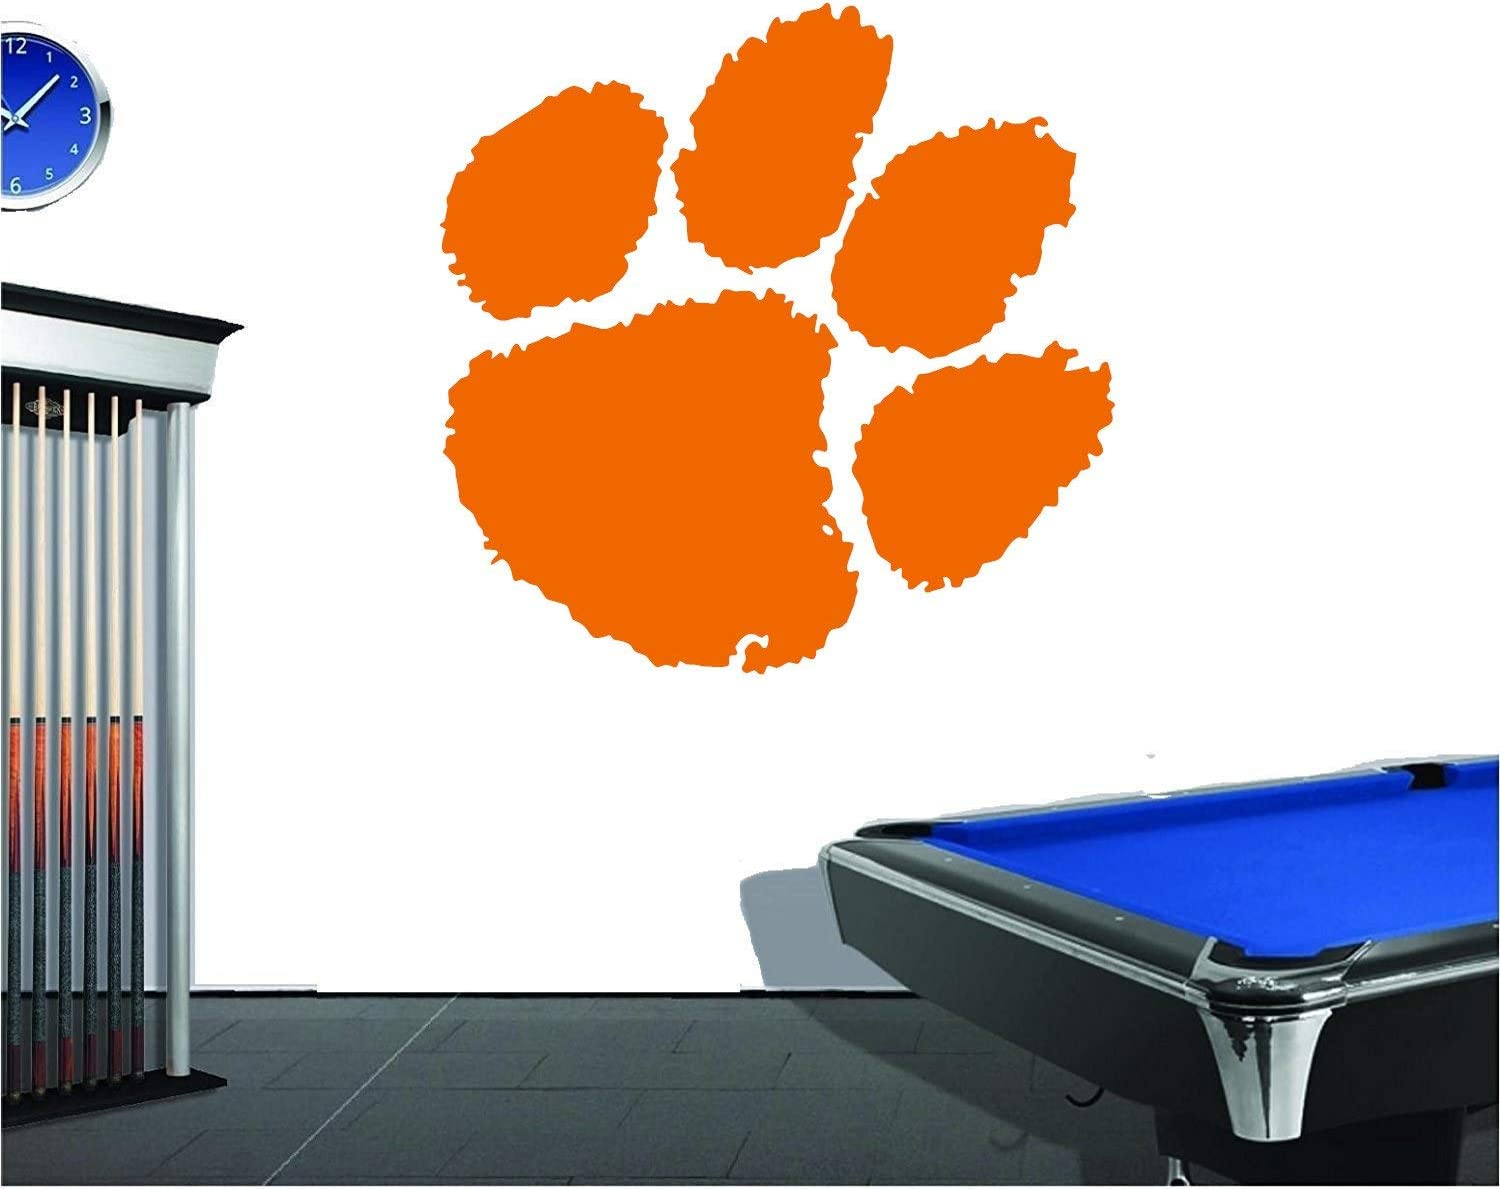 AdecalsNew Large Clemson Tigers Paw Man Cave College Football Wall Decor Decal Vinyl Sticker Made in USA Fast DELIVERY!